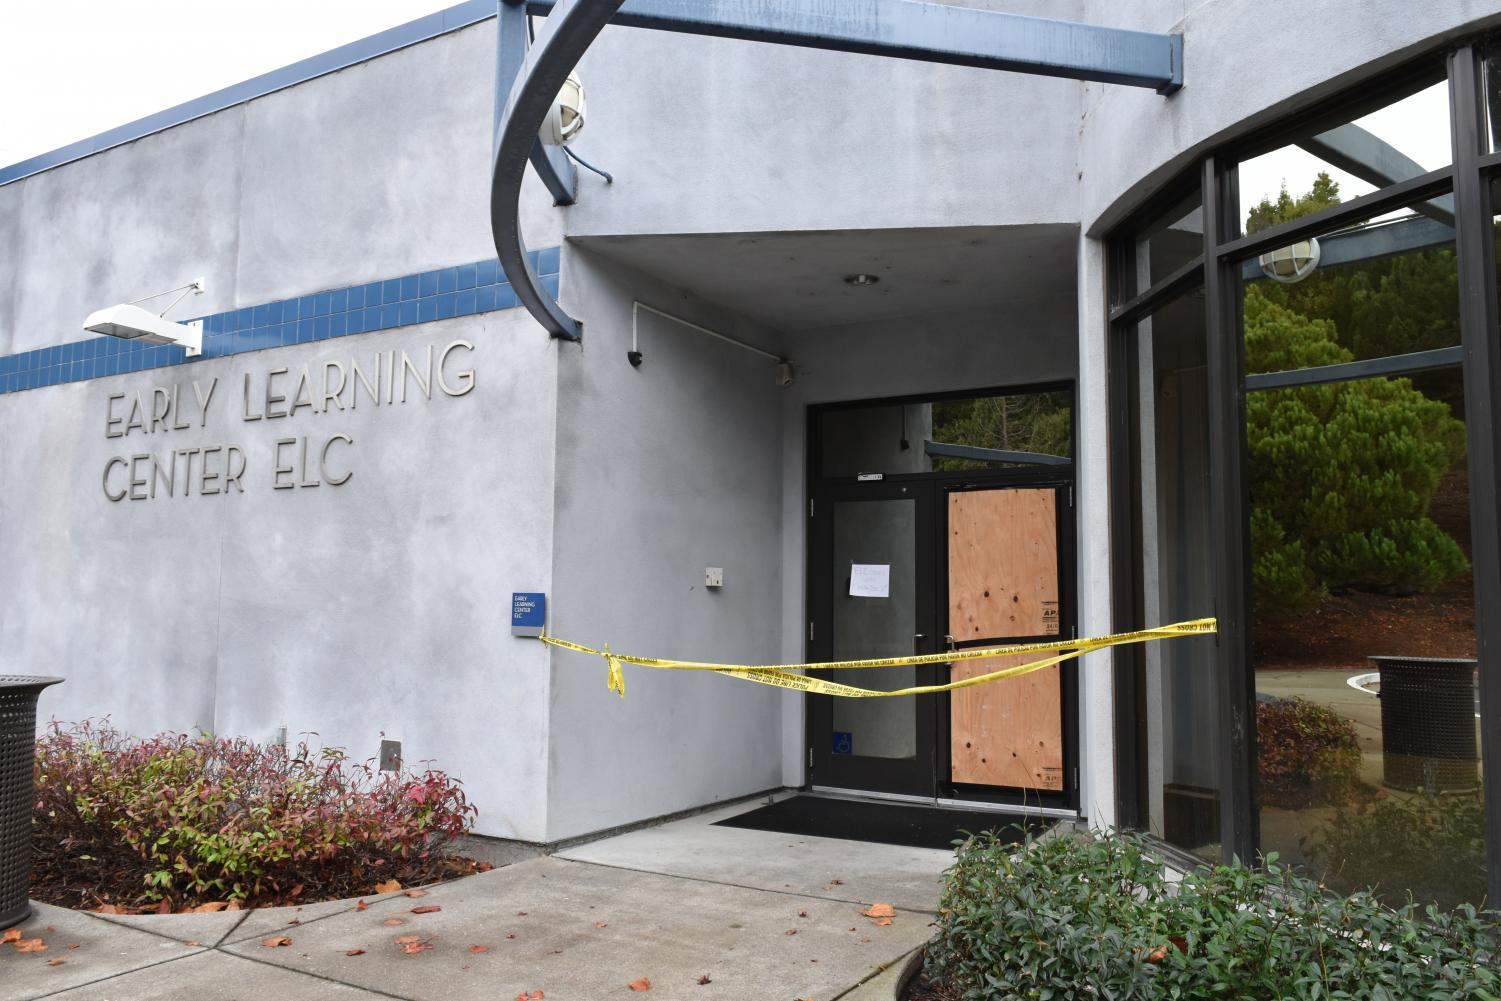 A plywood was placed on Nov. 26 to prevent any injuries from shatter glass from the vandalized door of the Early Learning Center